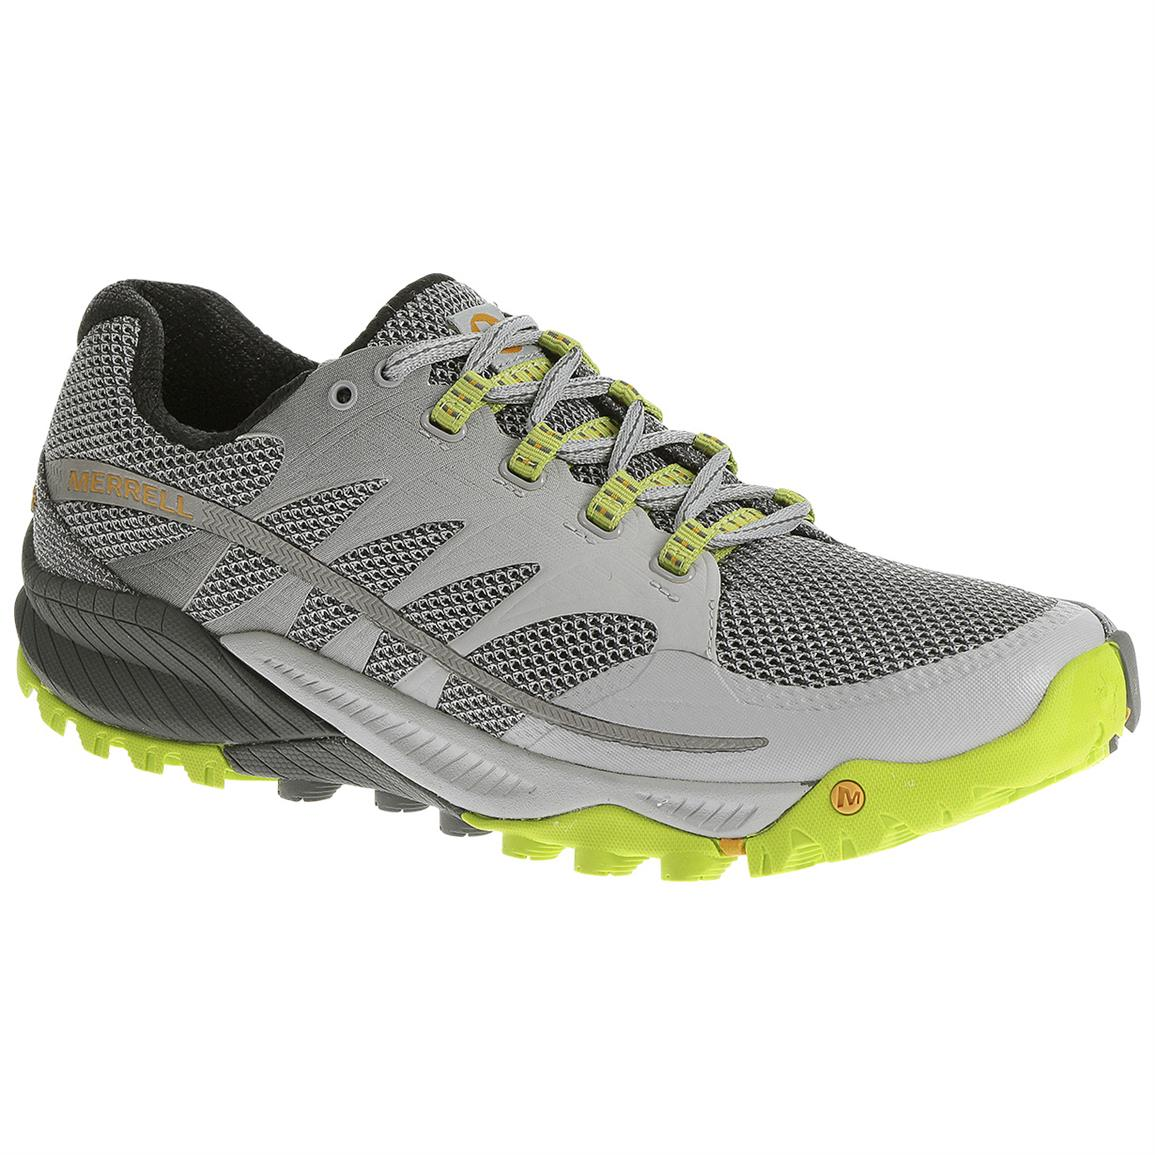 Merrell All Out Charge Trail Running Shoes, Grey / Lime Green